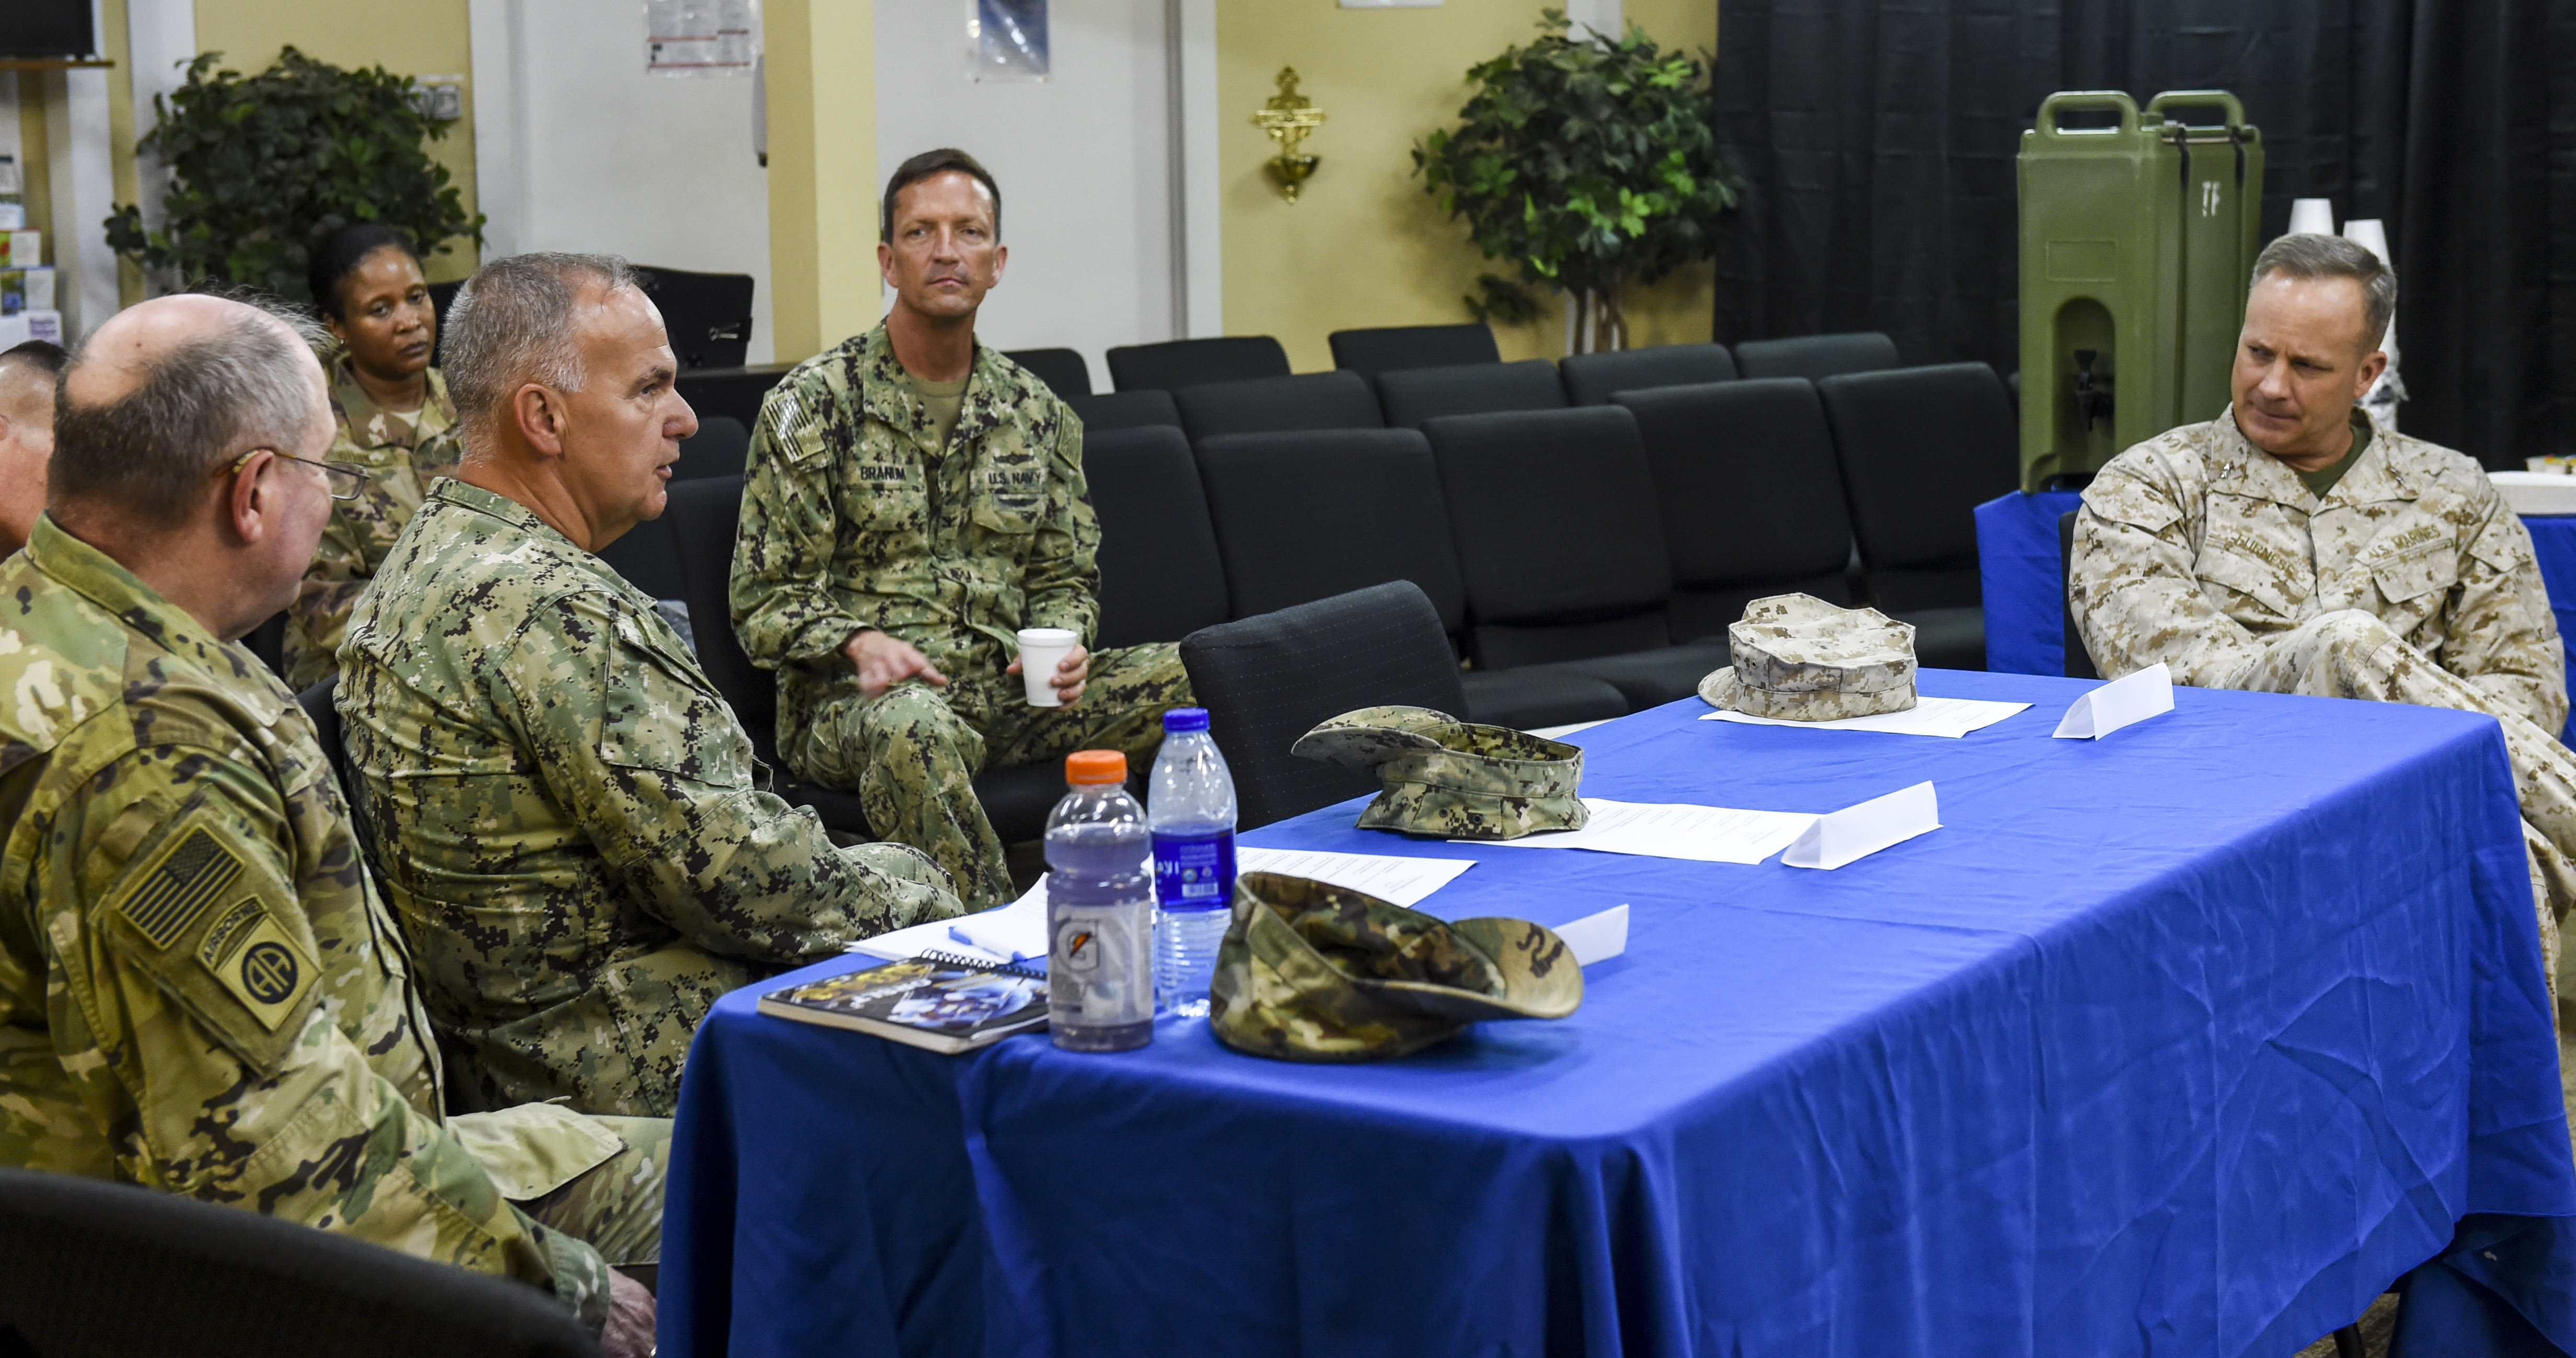 Chaplains and chaplain assistants from U.S. Africa Command (AFRICOM), U.S. Army Africa (USARAF), and U.S. Air Forces Africa (AFAFRICA) listen to U.S. Marine Corps Maj. Gen. David Furness, commanding general of Combined Joint Task Force-Horn of Africa (CJTF-HOA), during a religious affairs workshop at Camp Lemonnier, Djibouti, April 11, 2018. The CJTF-HOA Religious Affairs team hosted the workshop to synchronize and plan the support they provide for service members throughout the combined joint operating area. (U.S. Air Force photo by Staff Sgt. Timothy Moore)